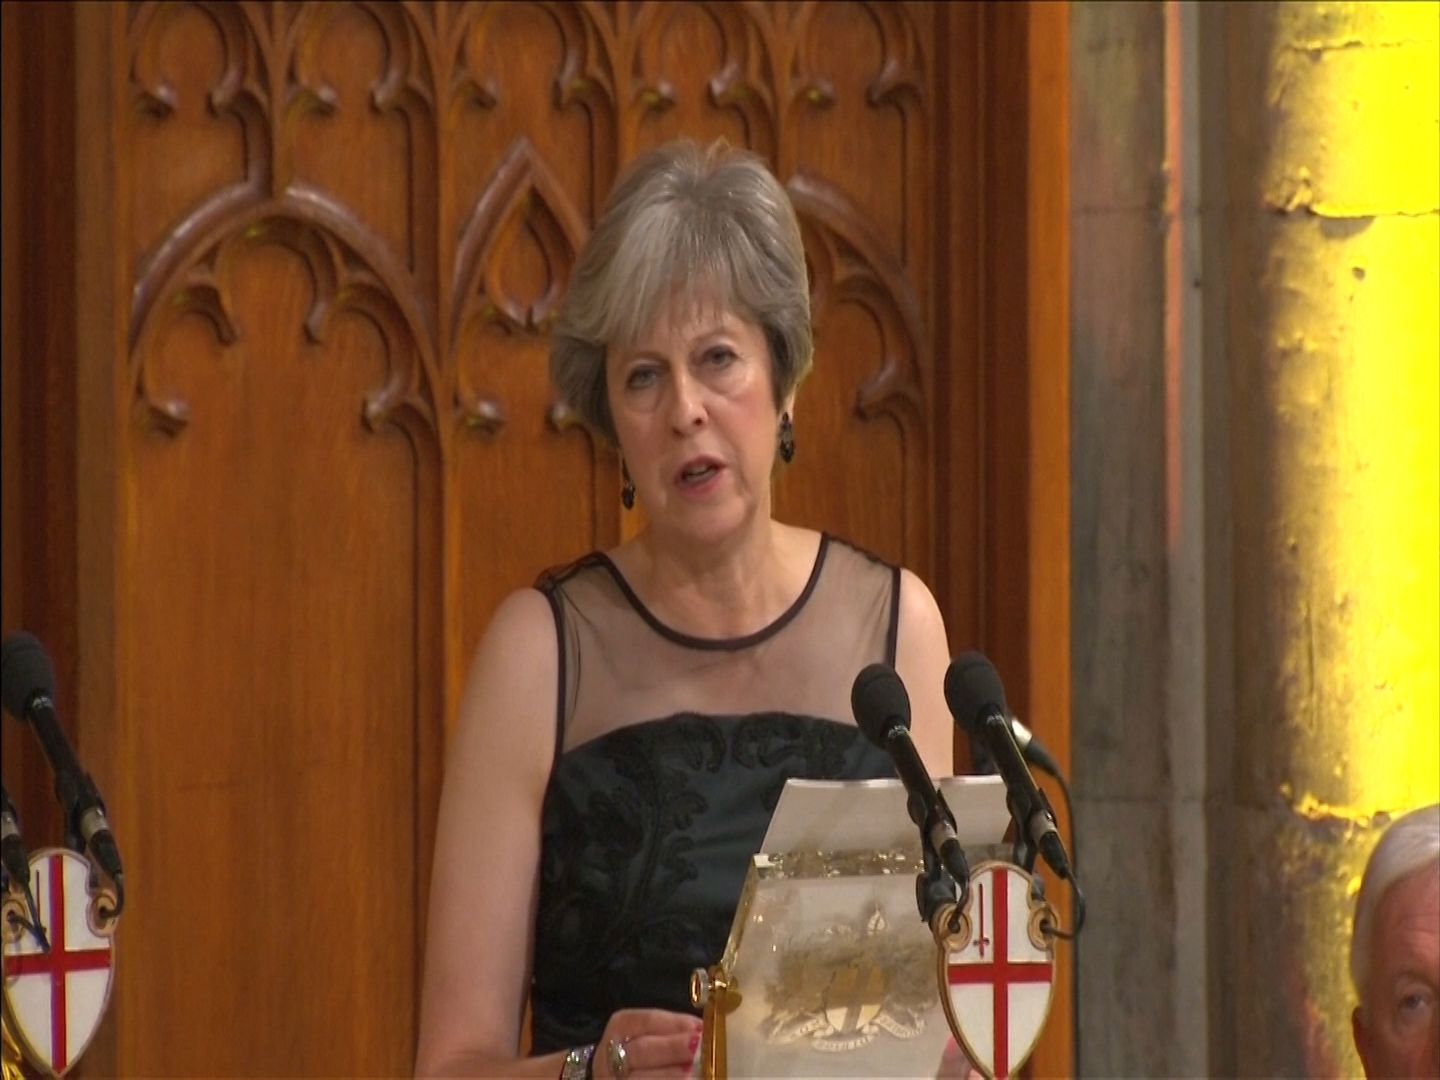 theresa-may-accuses-putin-of-election-meddling-we-know-what-you-are-doing